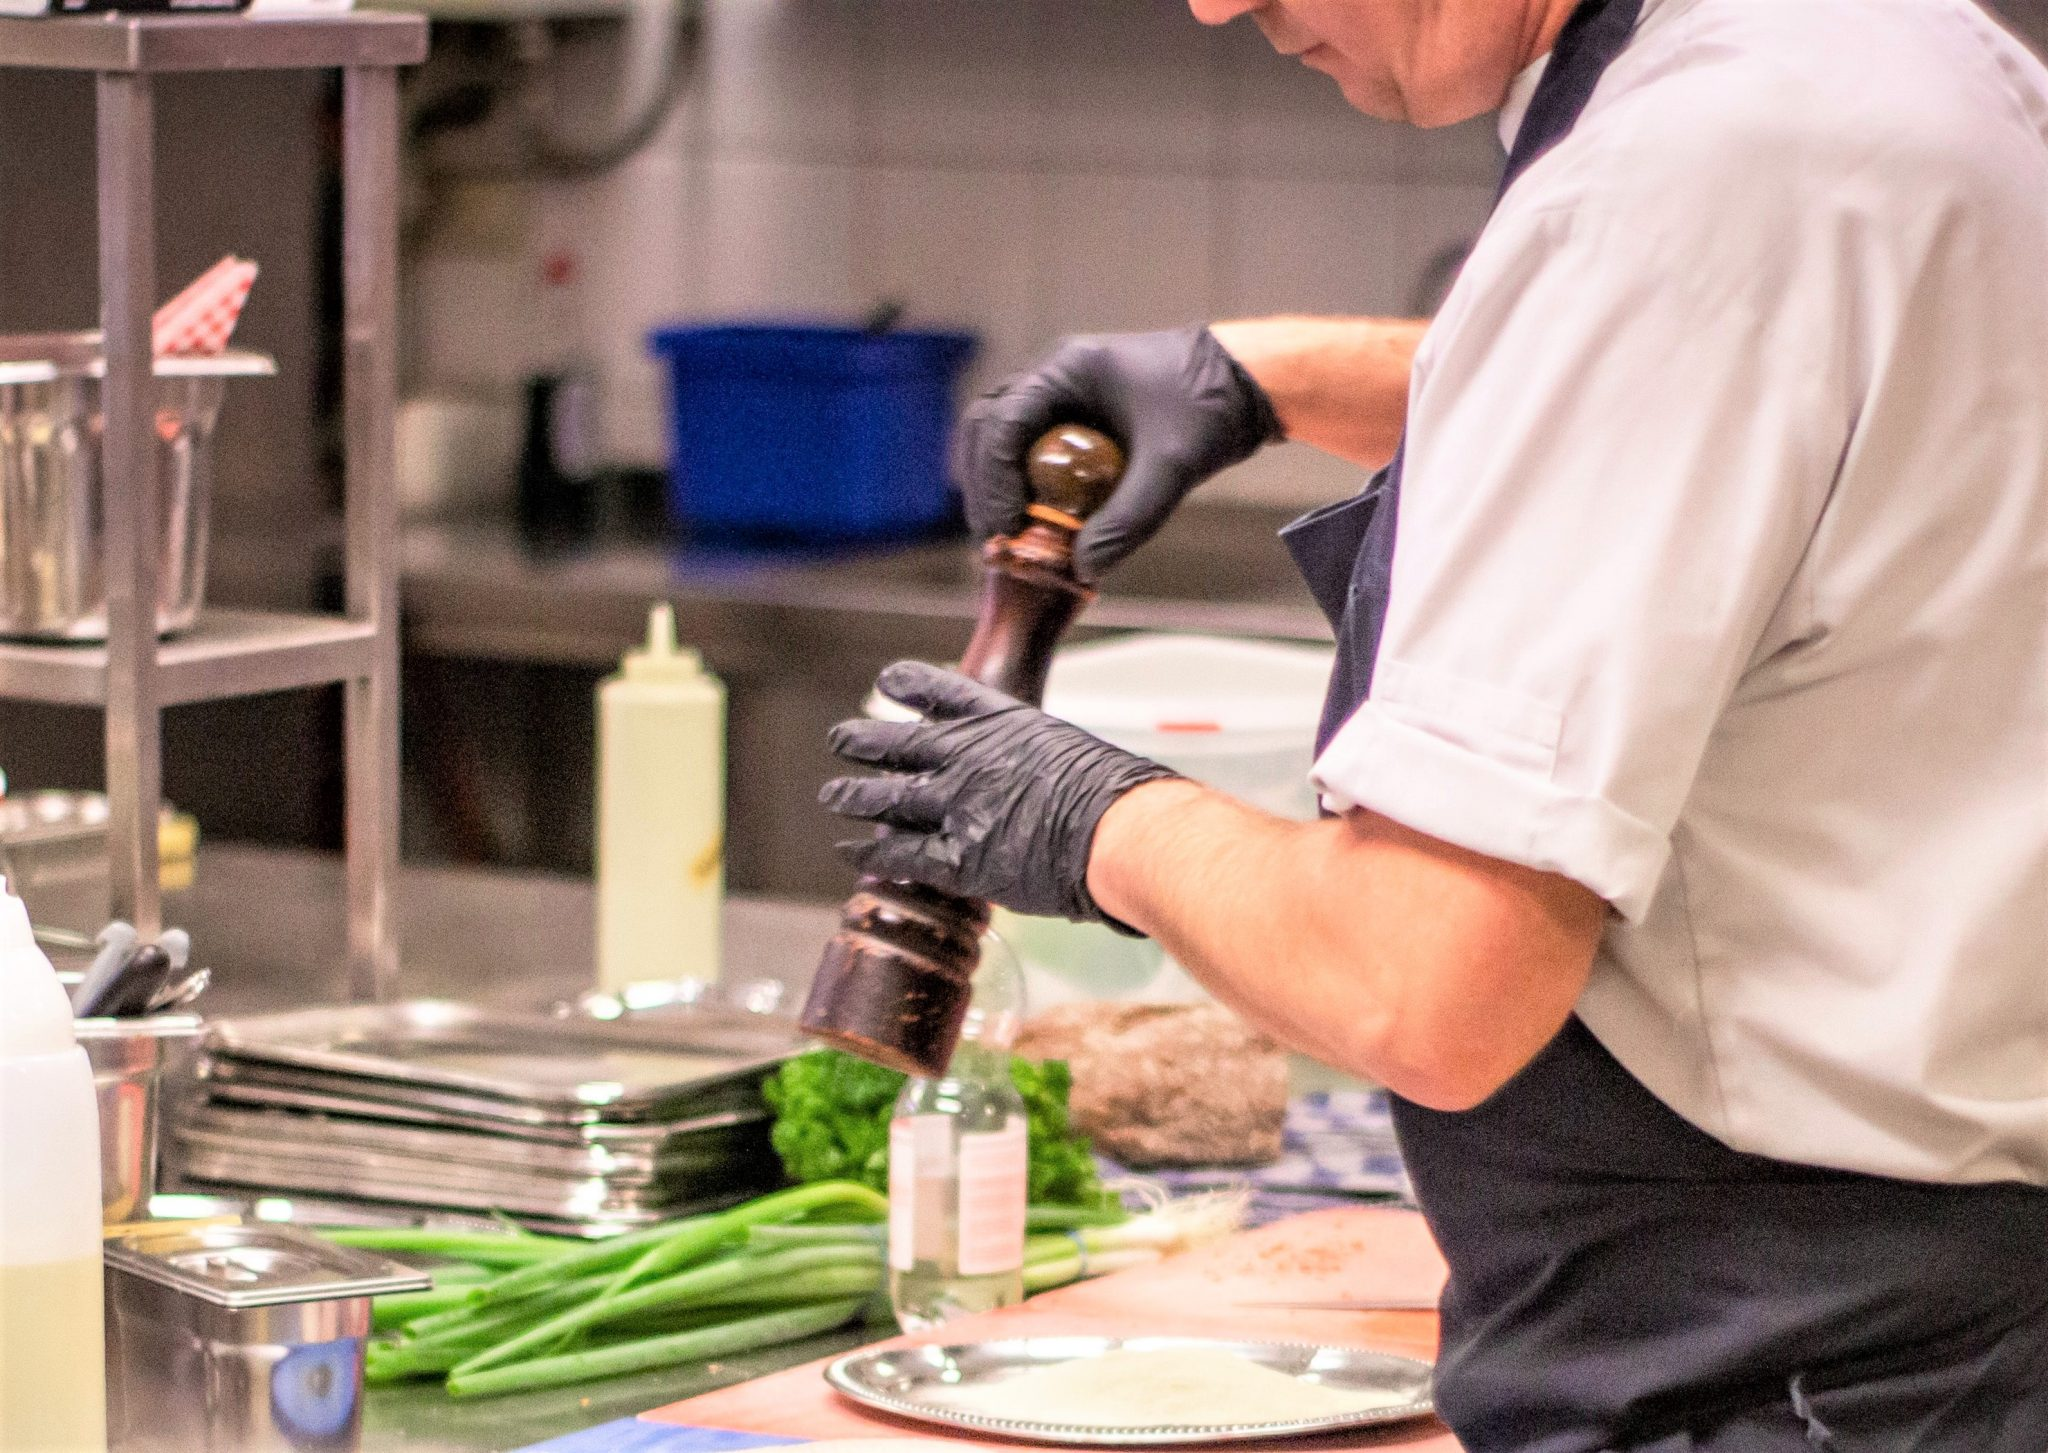 Person in commercial kitchen